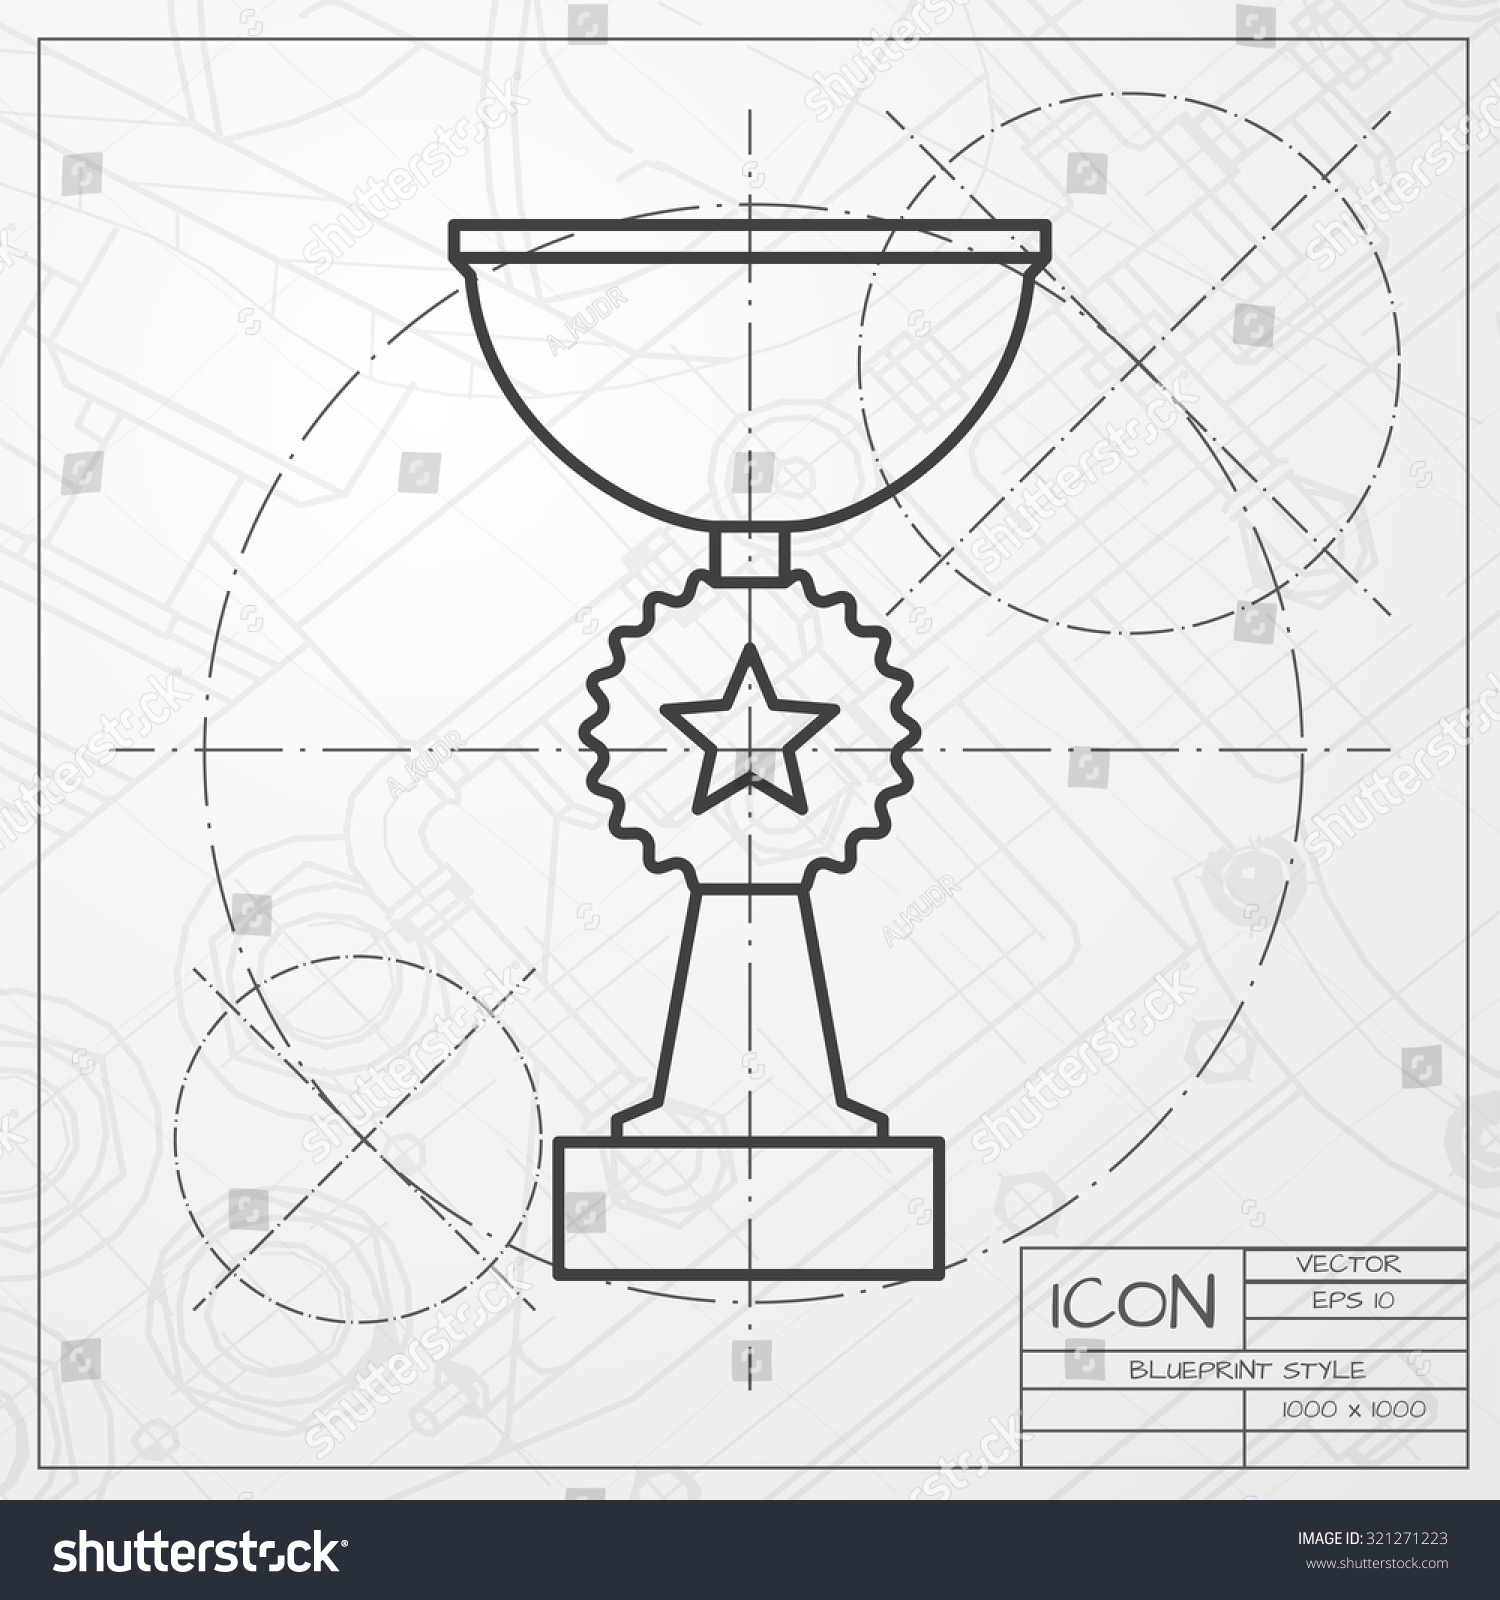 Vector classic blueprint trophy goblet icon stock vector 321271223 vector classic blueprint of trophy goblet icon on engineer and architect background winner award malvernweather Gallery